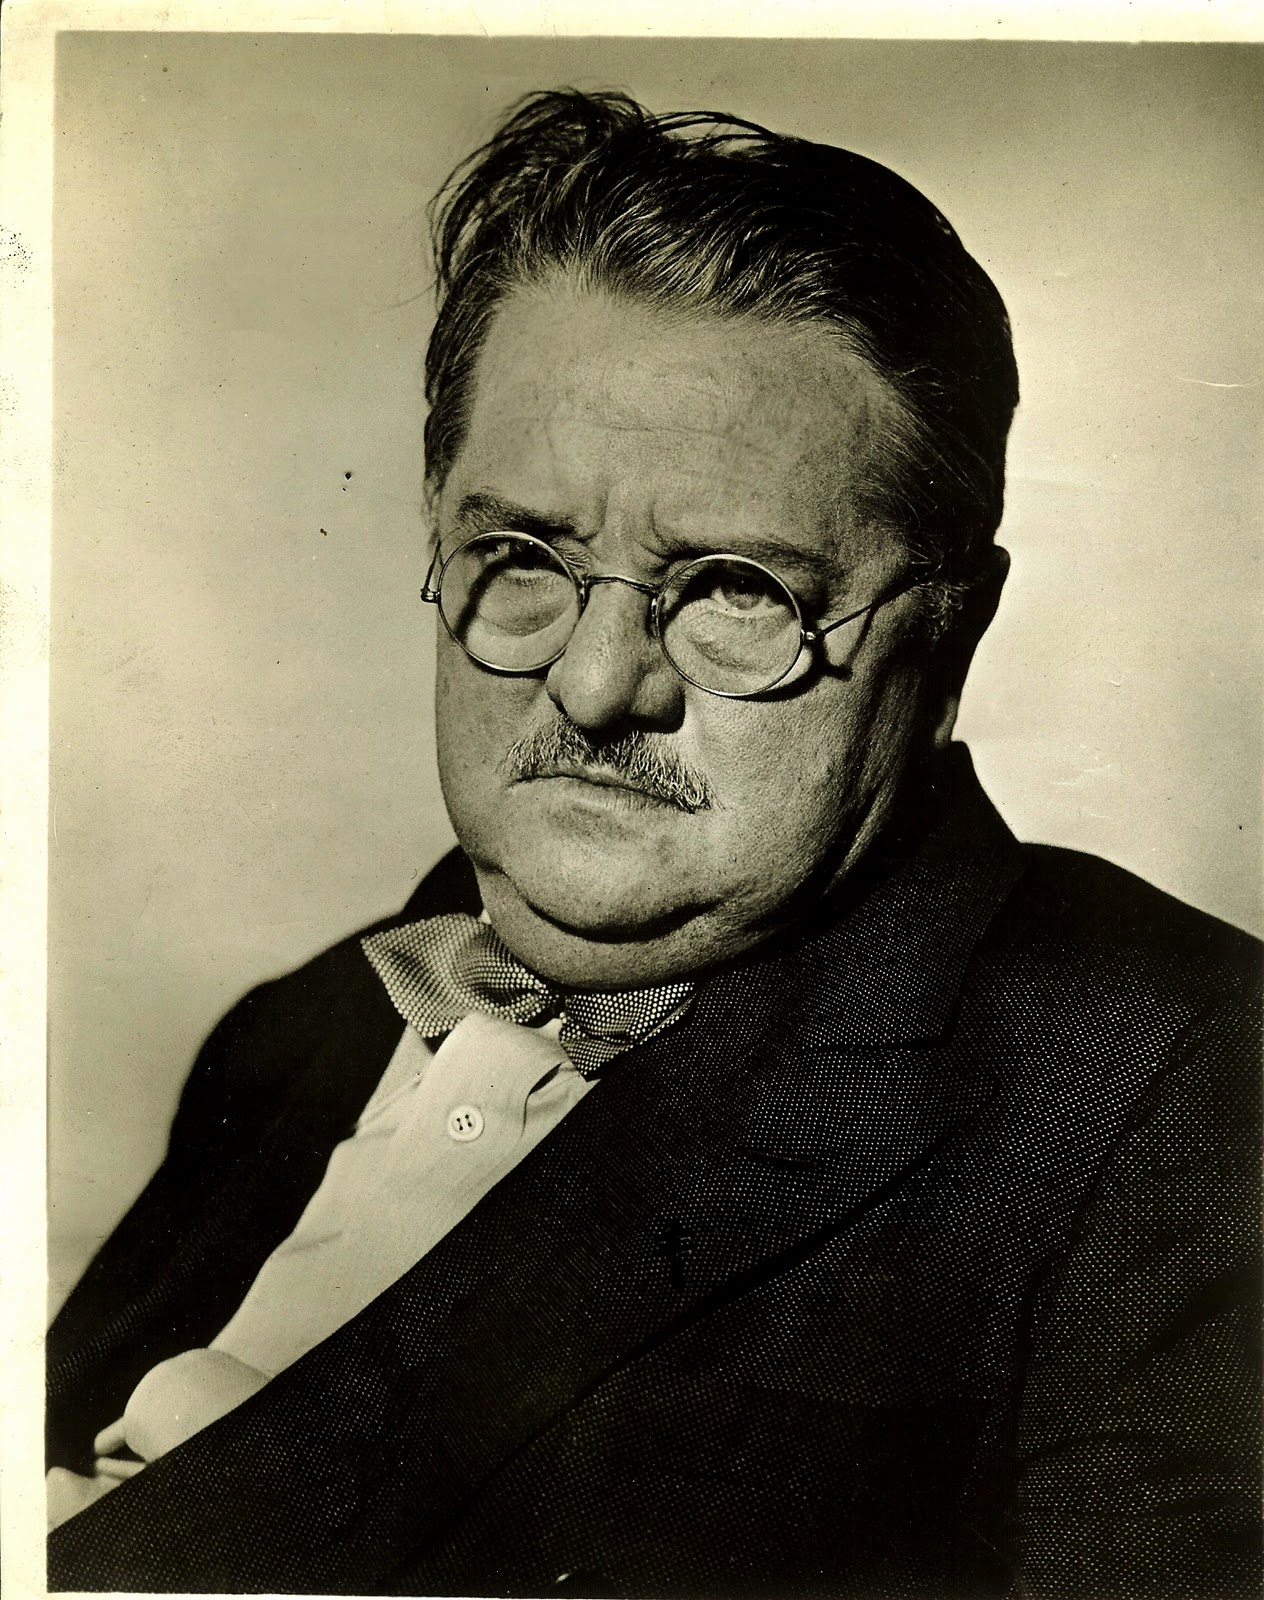 Alexander Woollcott, the real-life Sheridan Whiteside. Asked to describe him in one word, George S. Kaufman answered, 'Improbable.'